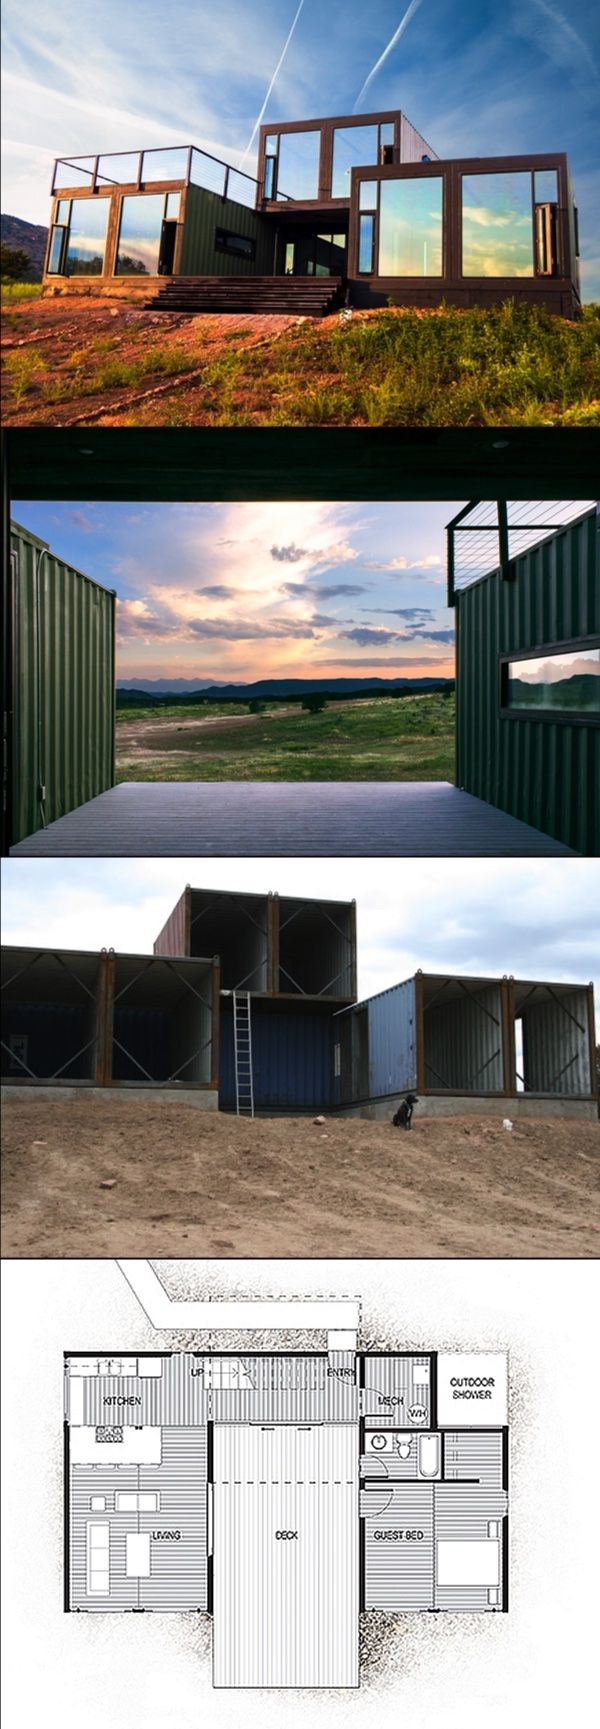 How To Build Storage Container Homes Insofast Has Designed A Diy Product Specifically Made For Shipping